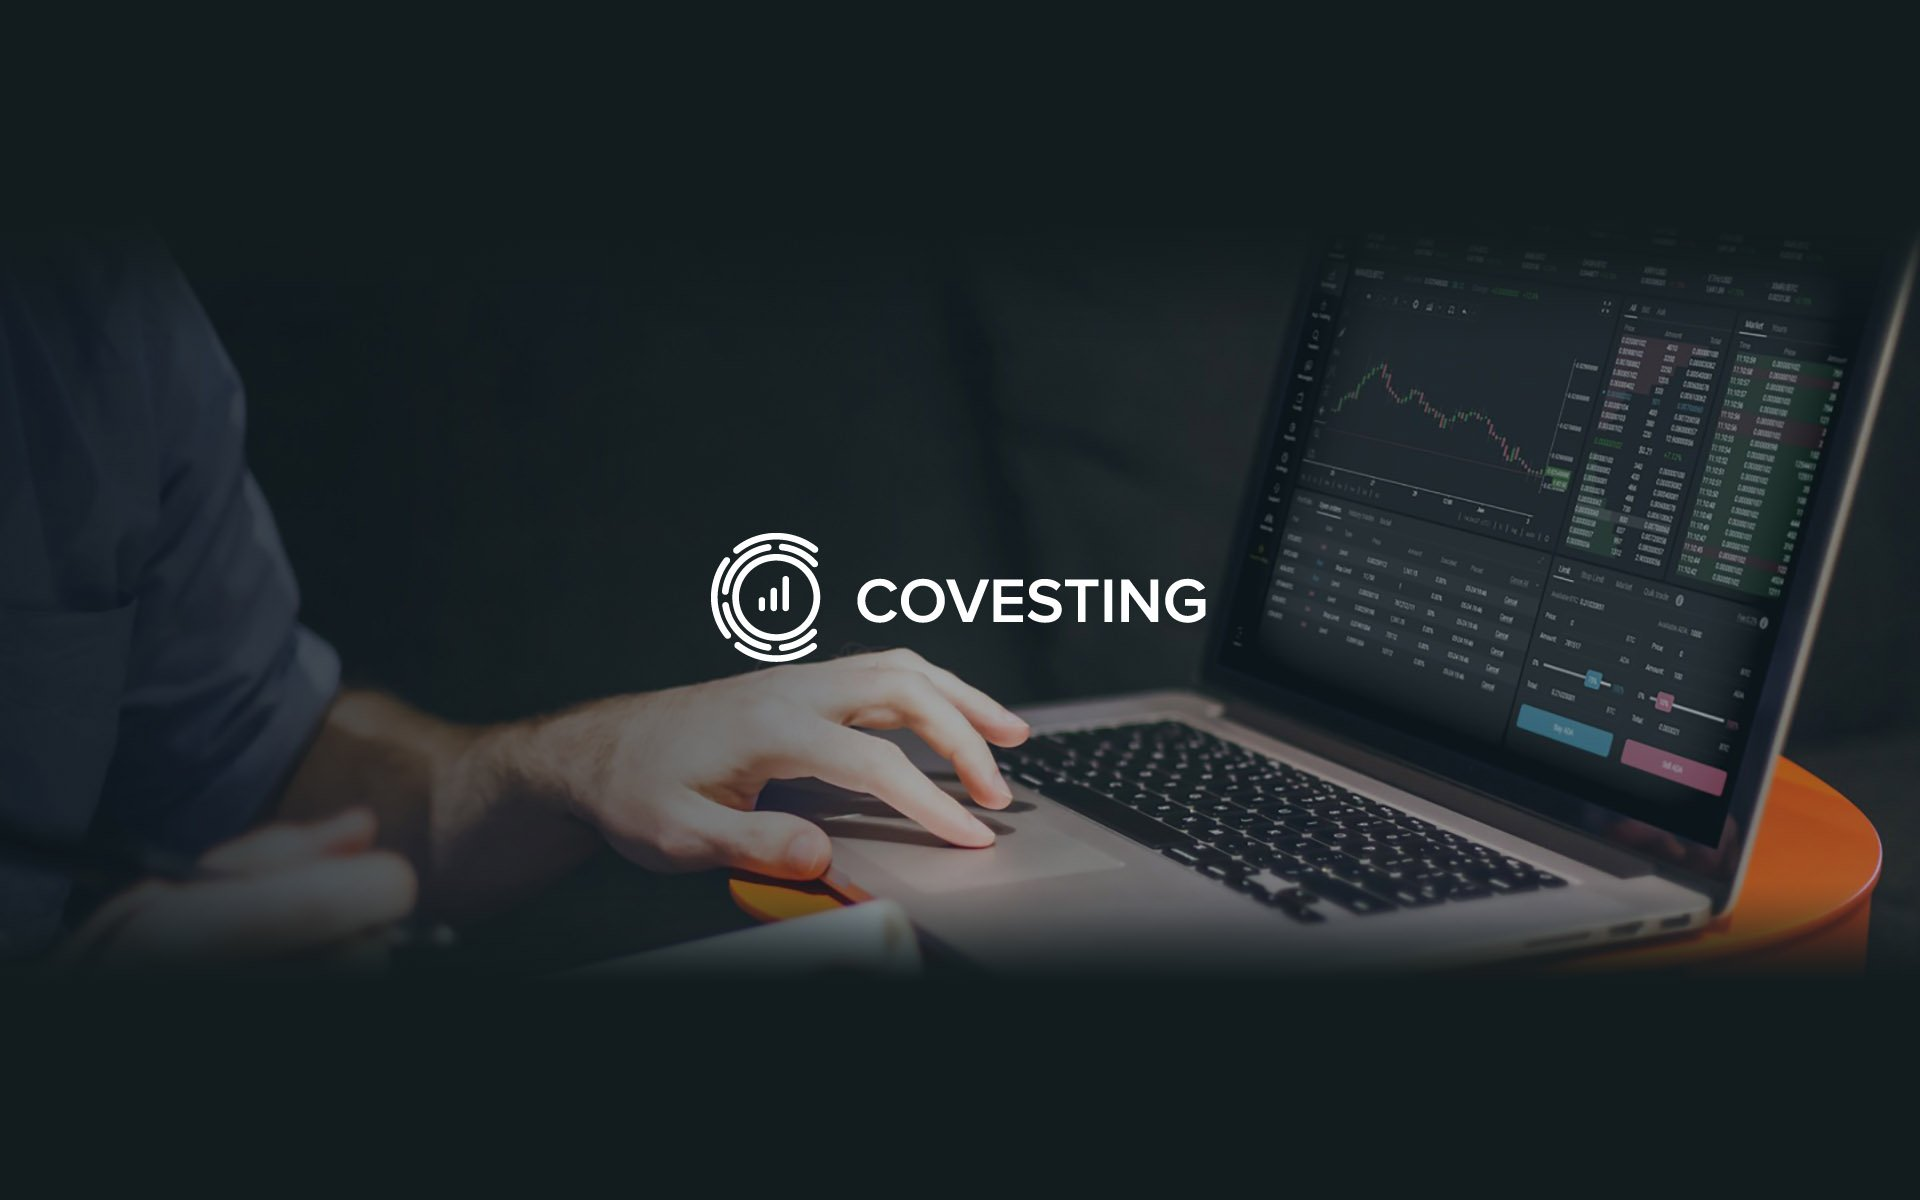 Covesting Invites Everyone to Test Their Platform